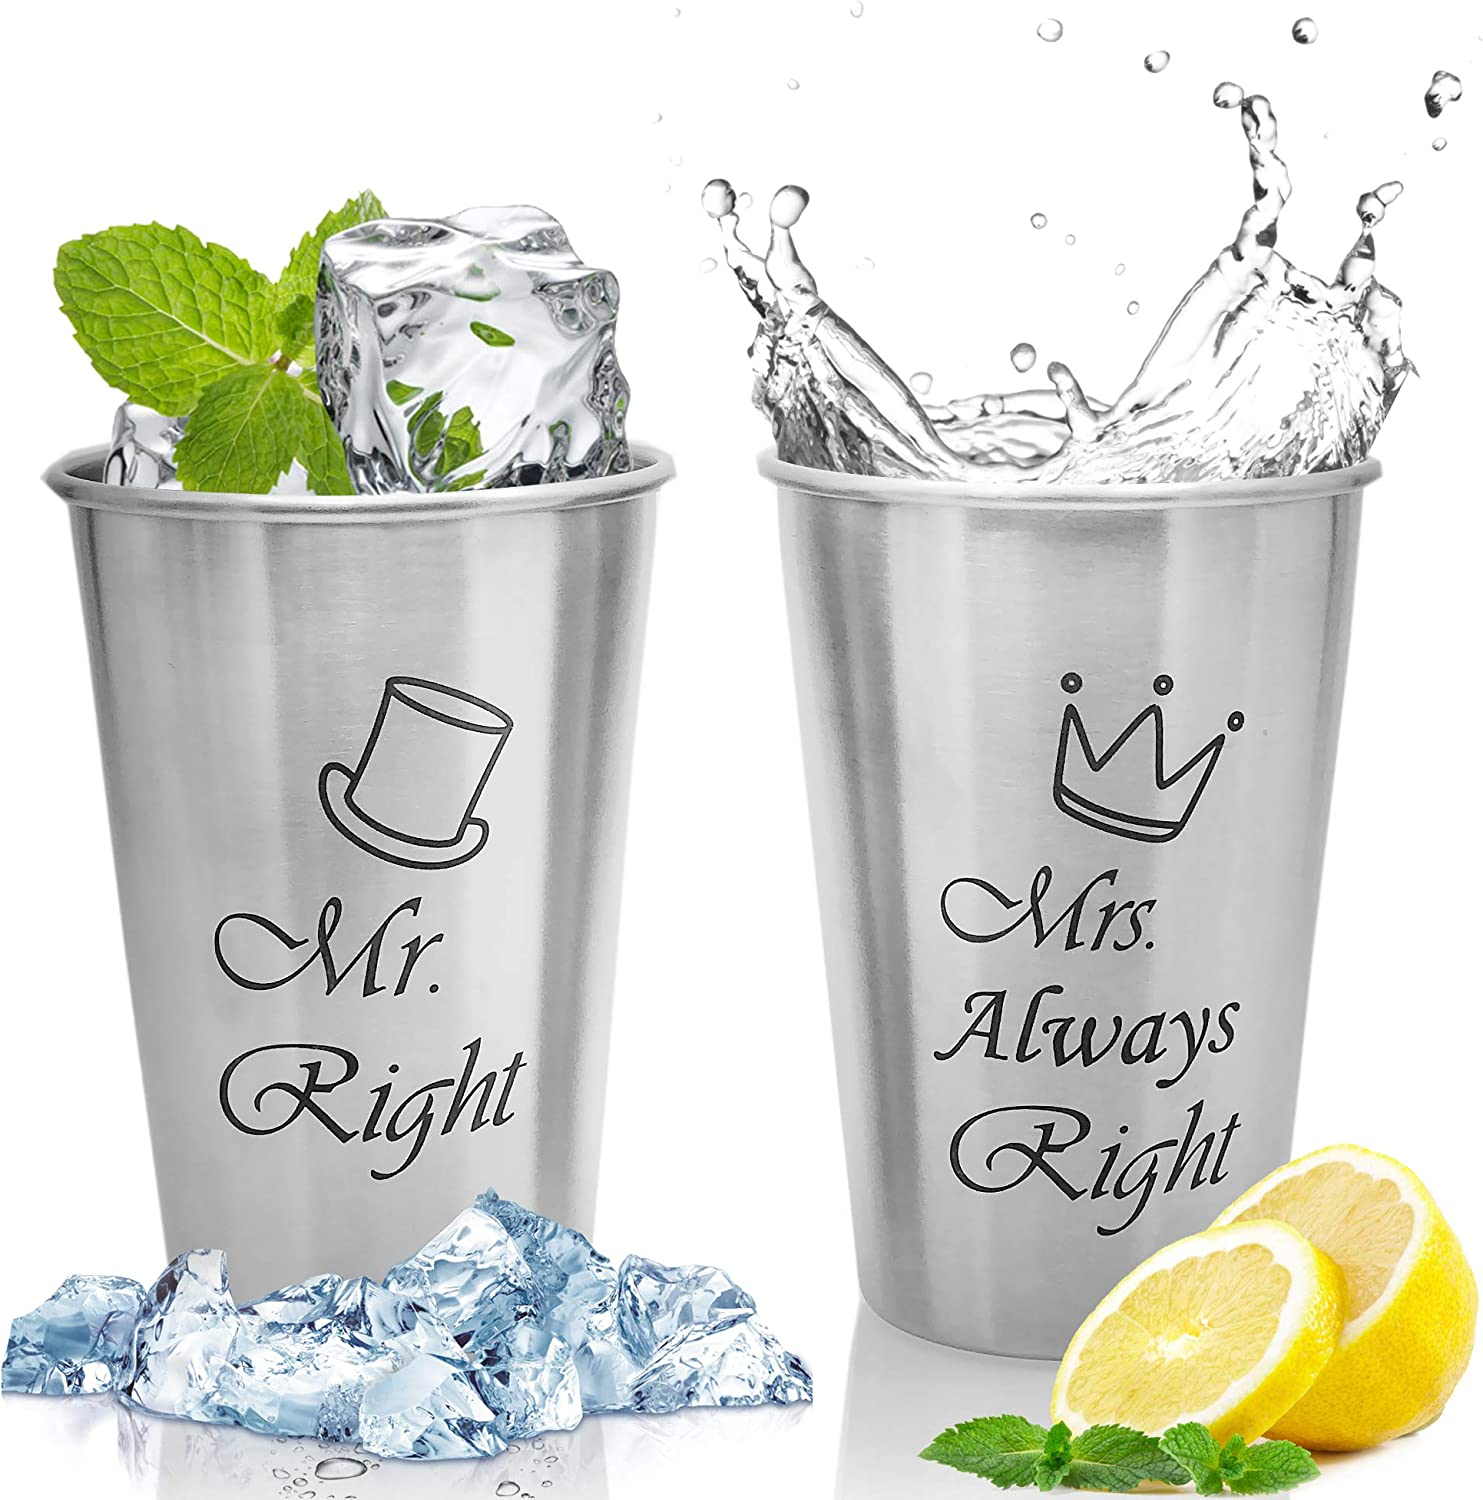 Image of two stainless cups with water and lemon slices below it. Mr. Right and Mrs. Always Right prints on the surface.